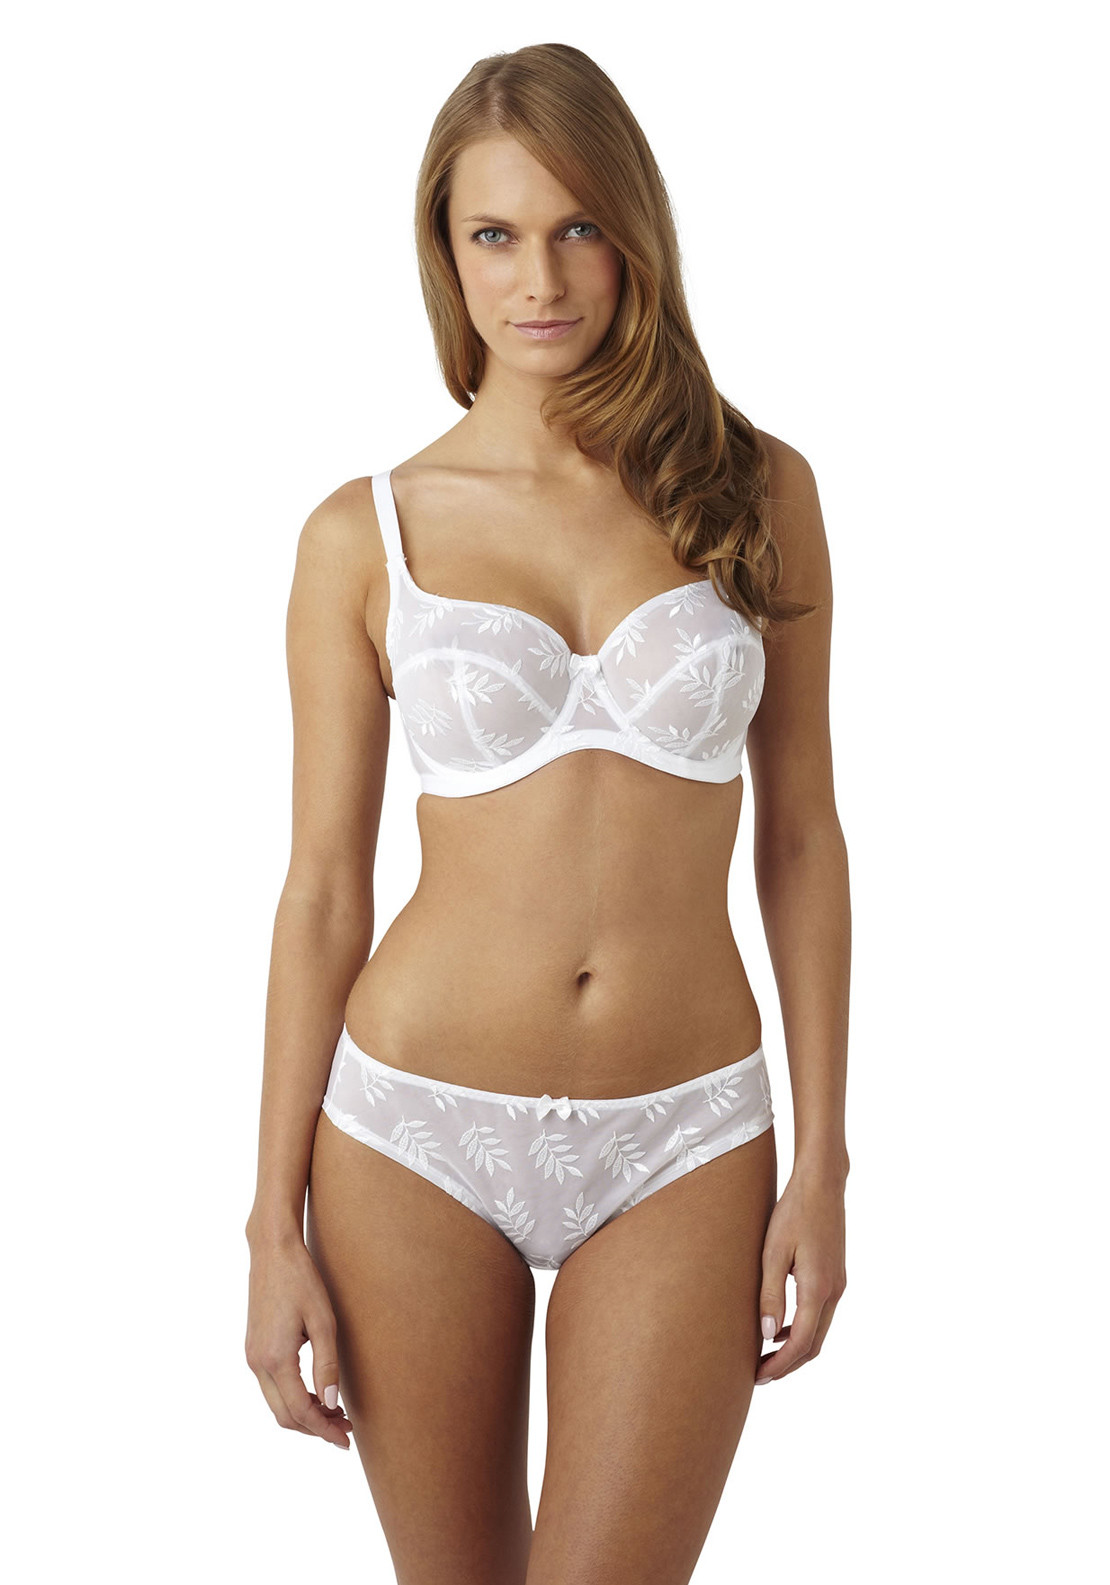 Panache Tango Embroidered Briefs, White